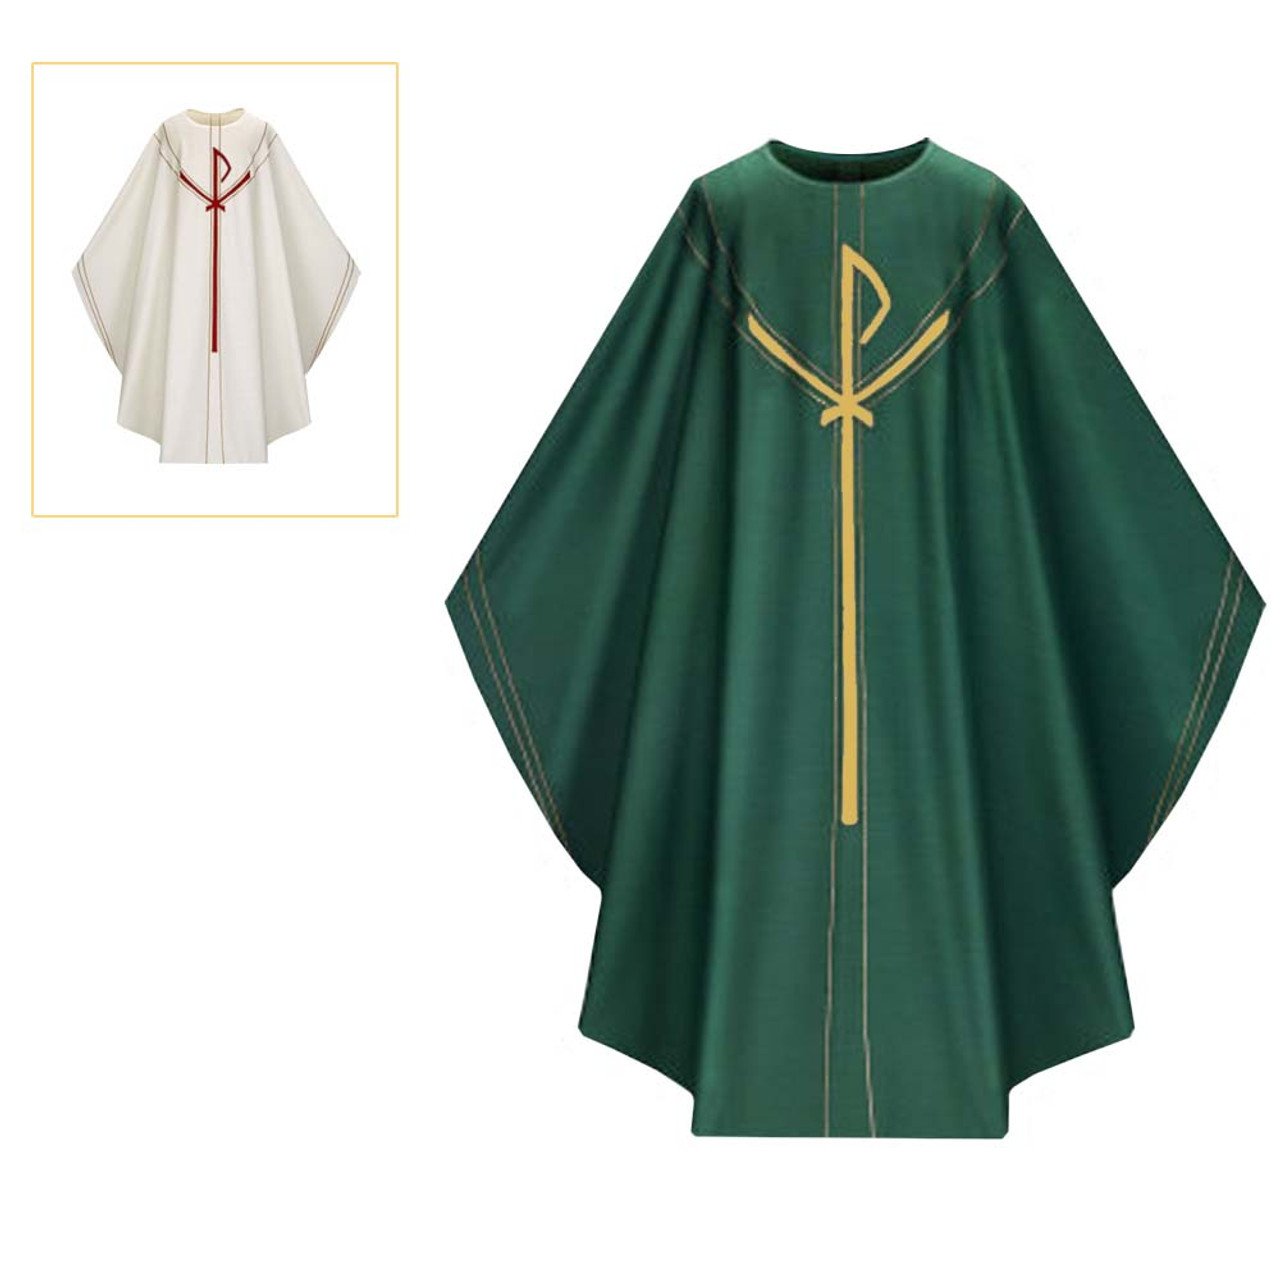 5090 Dark Green Chasuble in Dupion